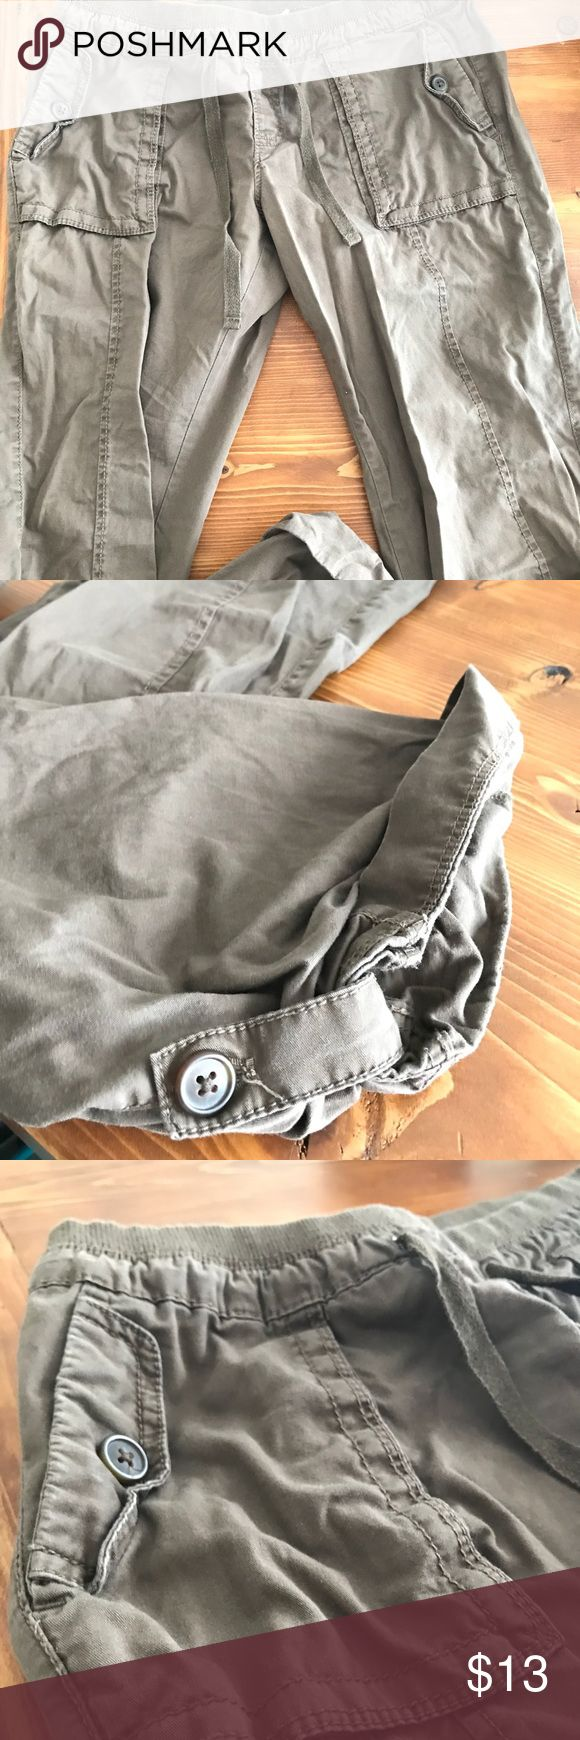 Old Navy- Cargo Pants 💕🌿 Old Navy- Cotton Army Green Cargo Pants. Very comfortable, Size XS, Pants button up for cropped look. Barely worn! ❤️ Old Navy Pants Ankle & Cropped